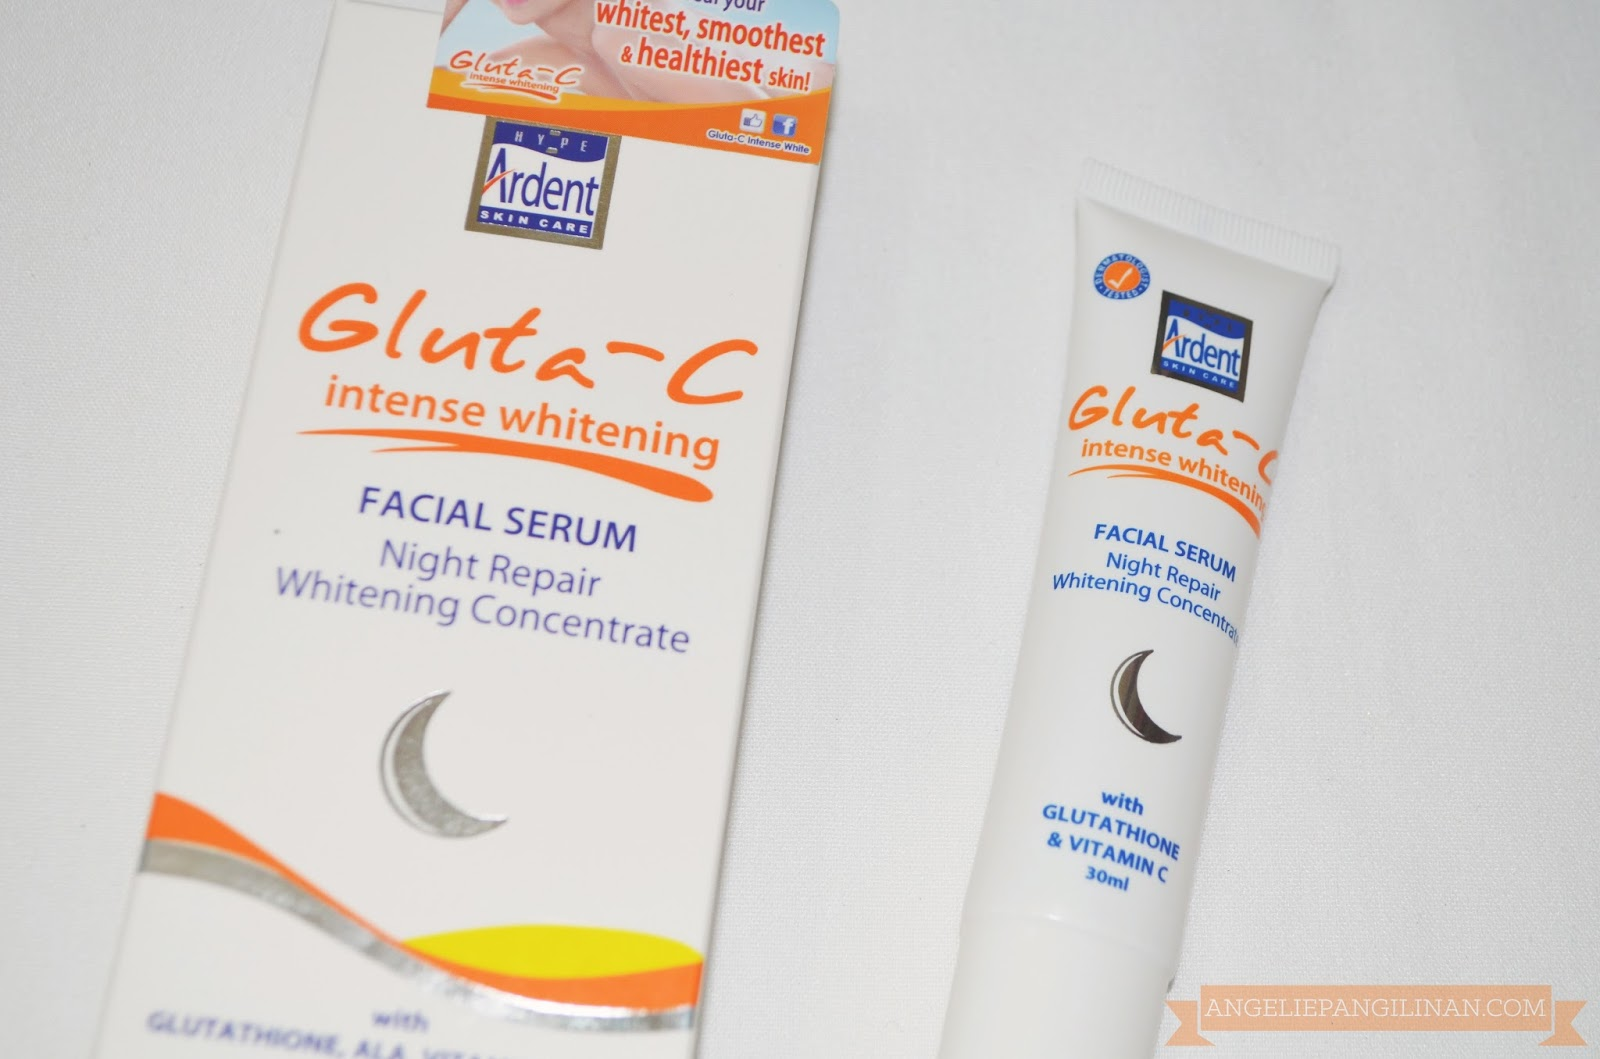 Gluta C Intense Whitening Facial Serum